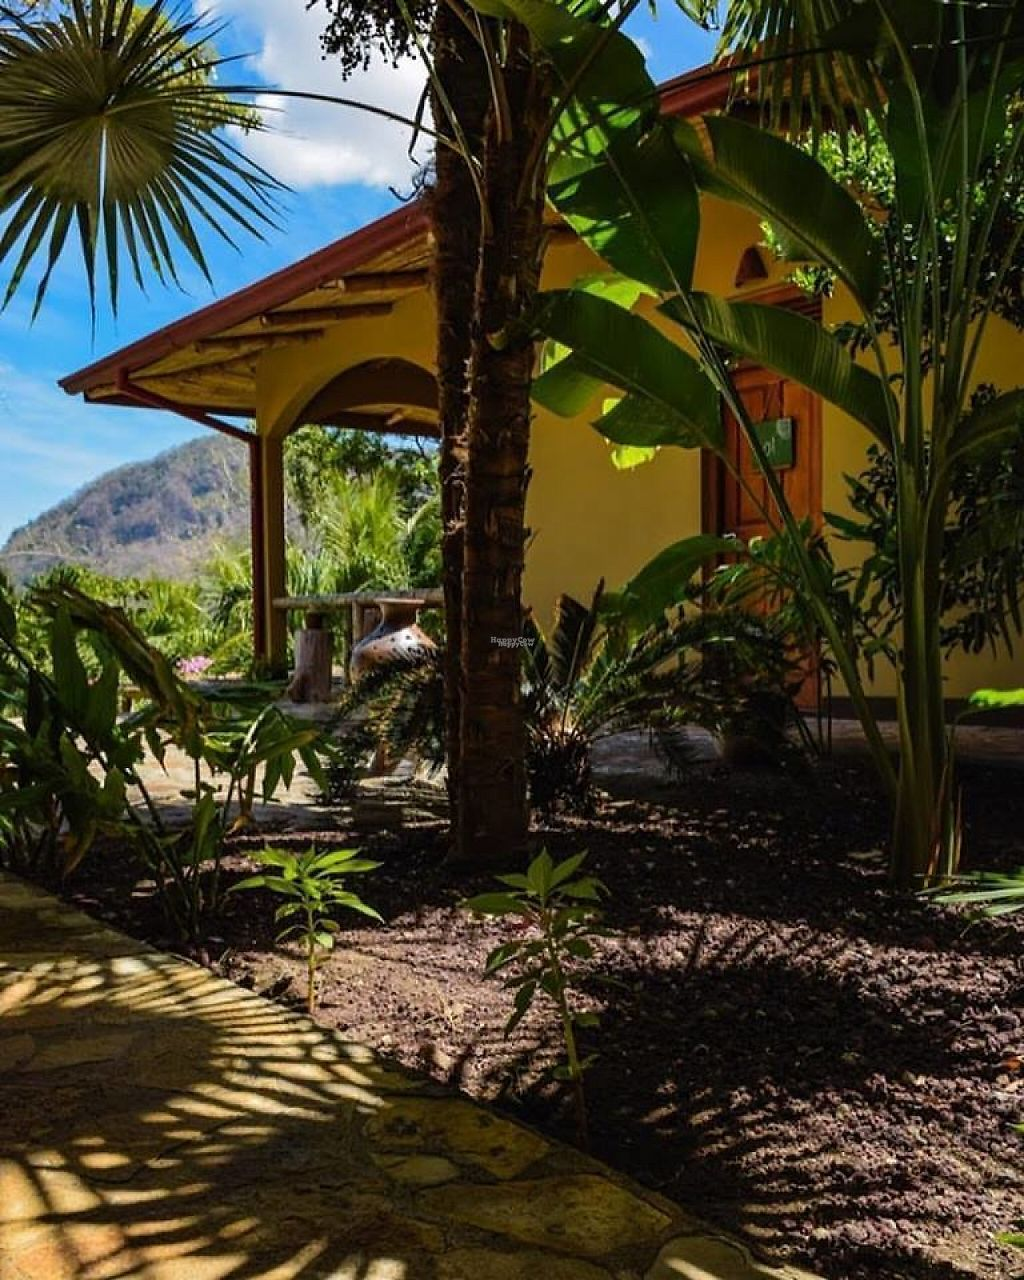 """Photo of Apoyo Lodge  by <a href=""""/members/profile/community"""">community</a> <br/>Apoyo Lodge <br/> March 16, 2017  - <a href='/contact/abuse/image/55327/236937'>Report</a>"""